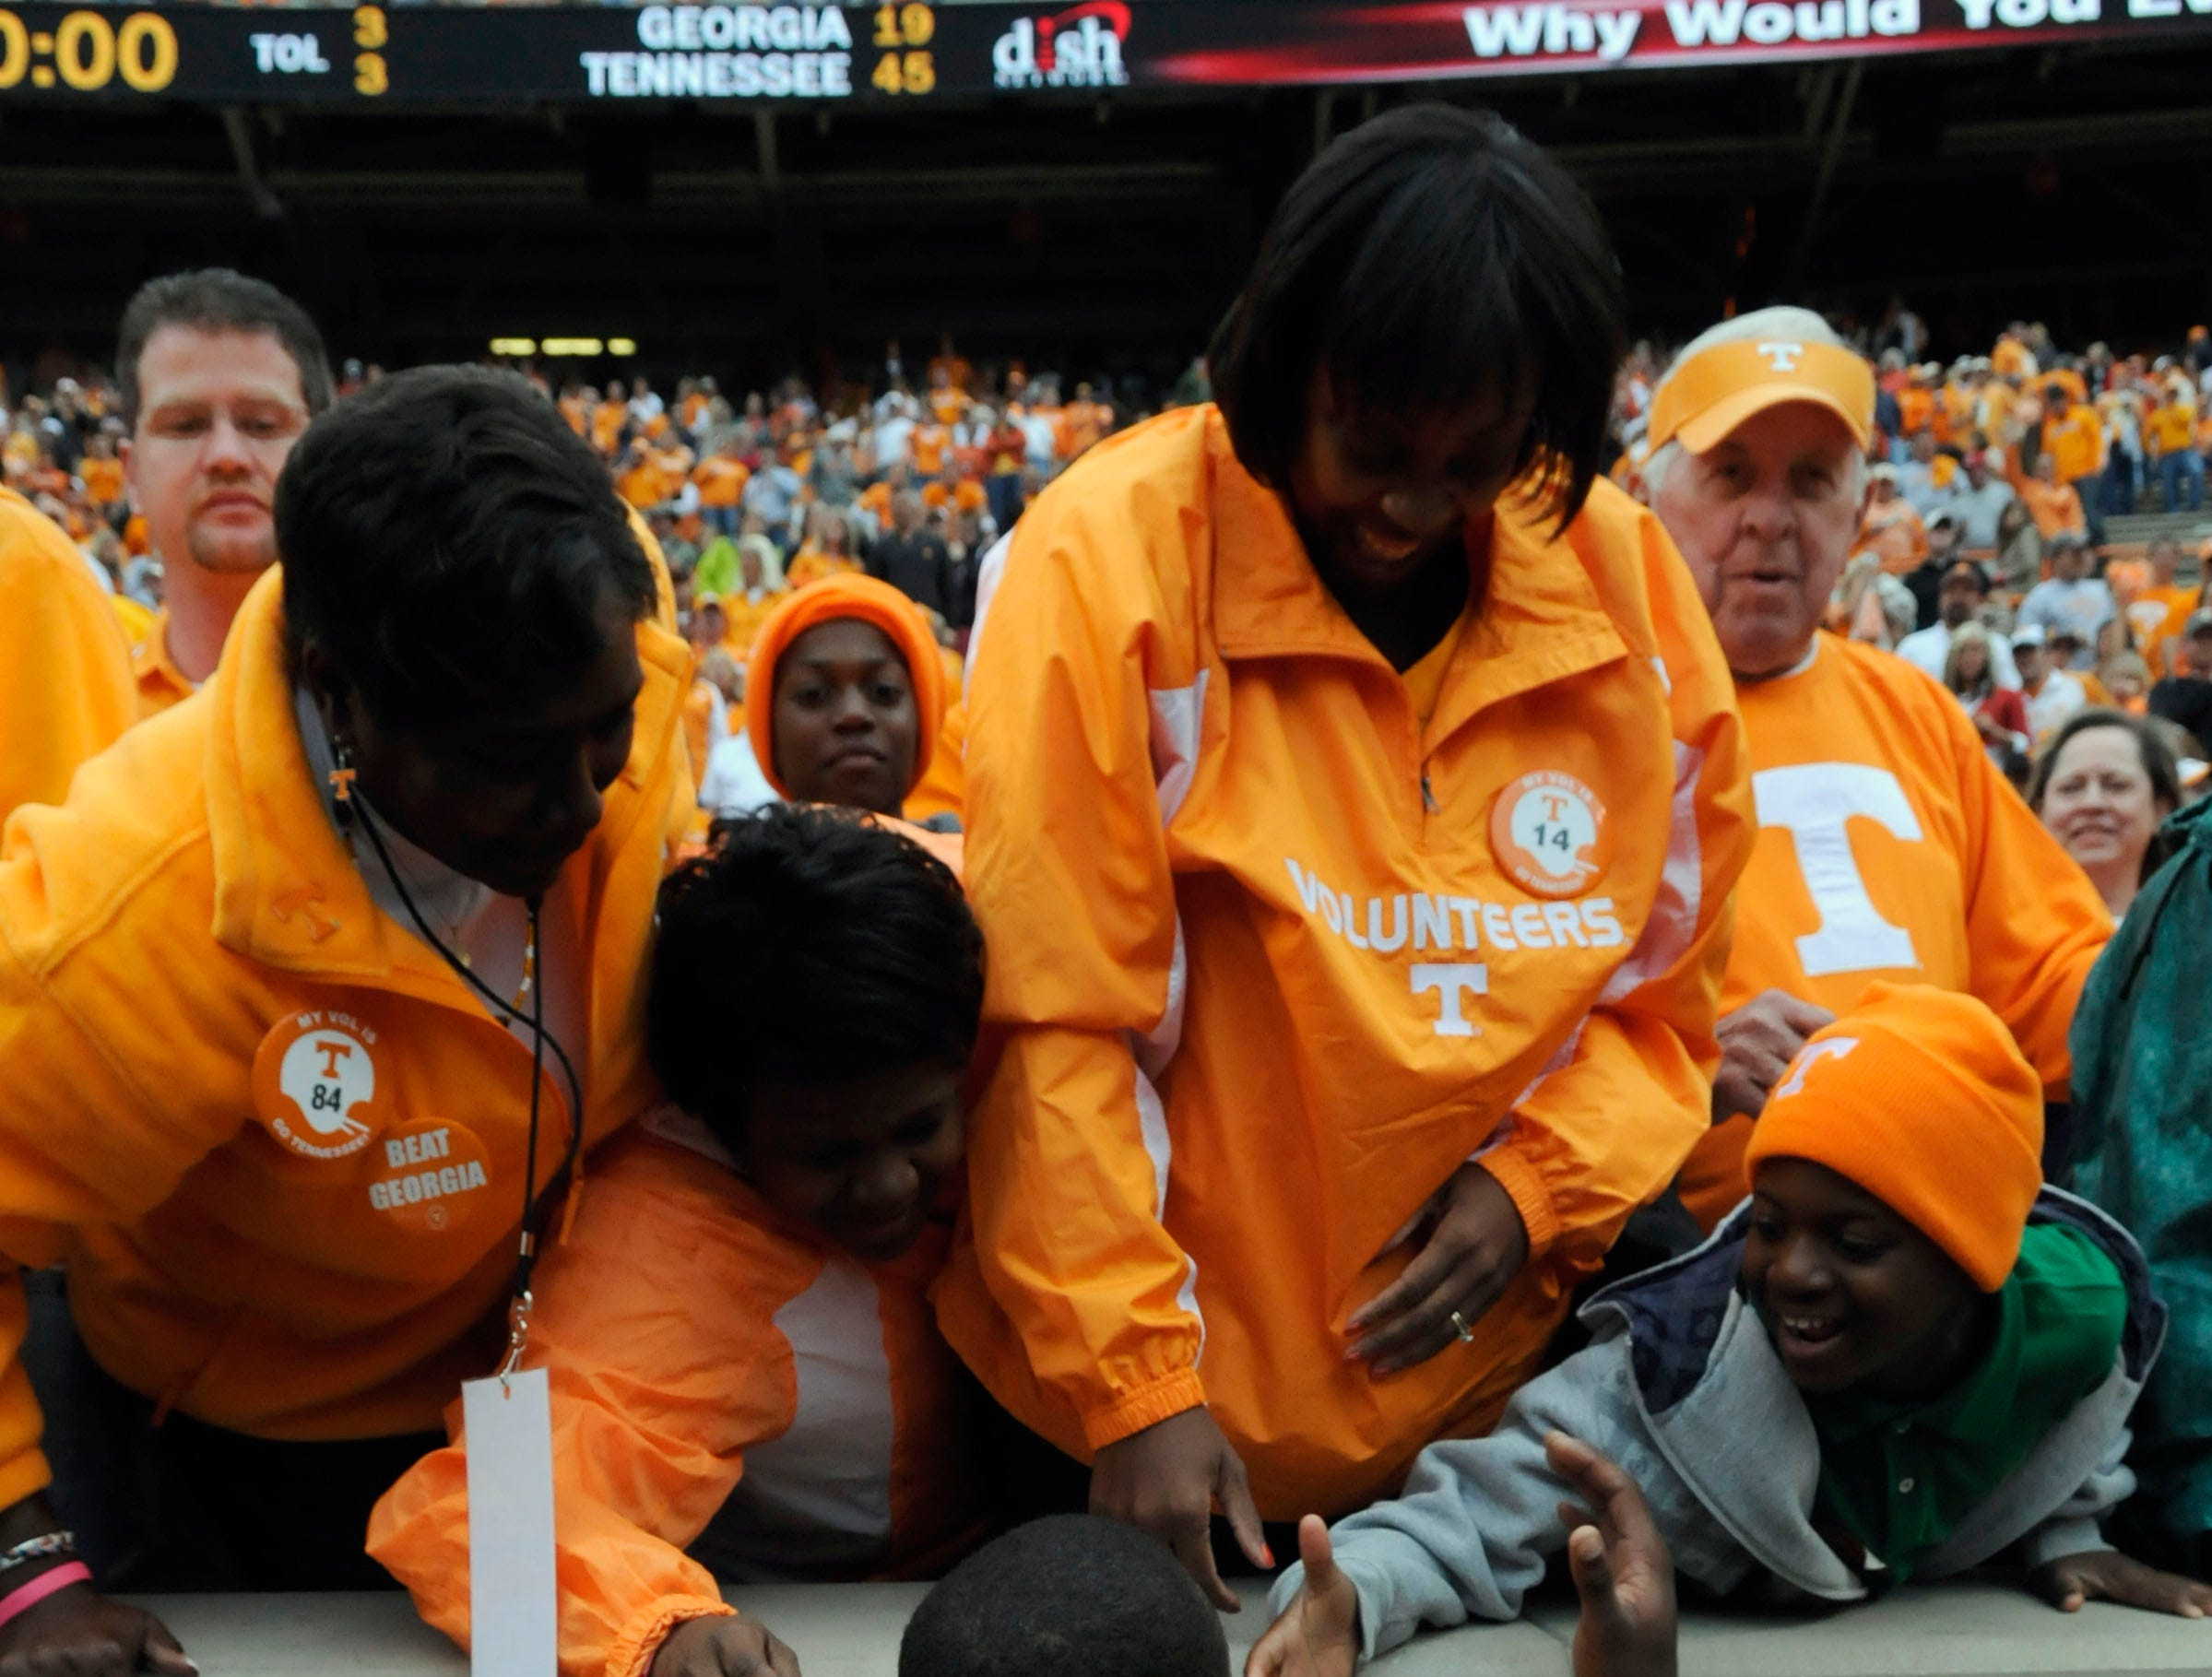 Tennessee cornerback Eric Berry (14) celebrates a victory with his family following Tennessee's 45-19 win over Georgia on Saturday, Oct. 10, 2009 at Neyland Stadium.